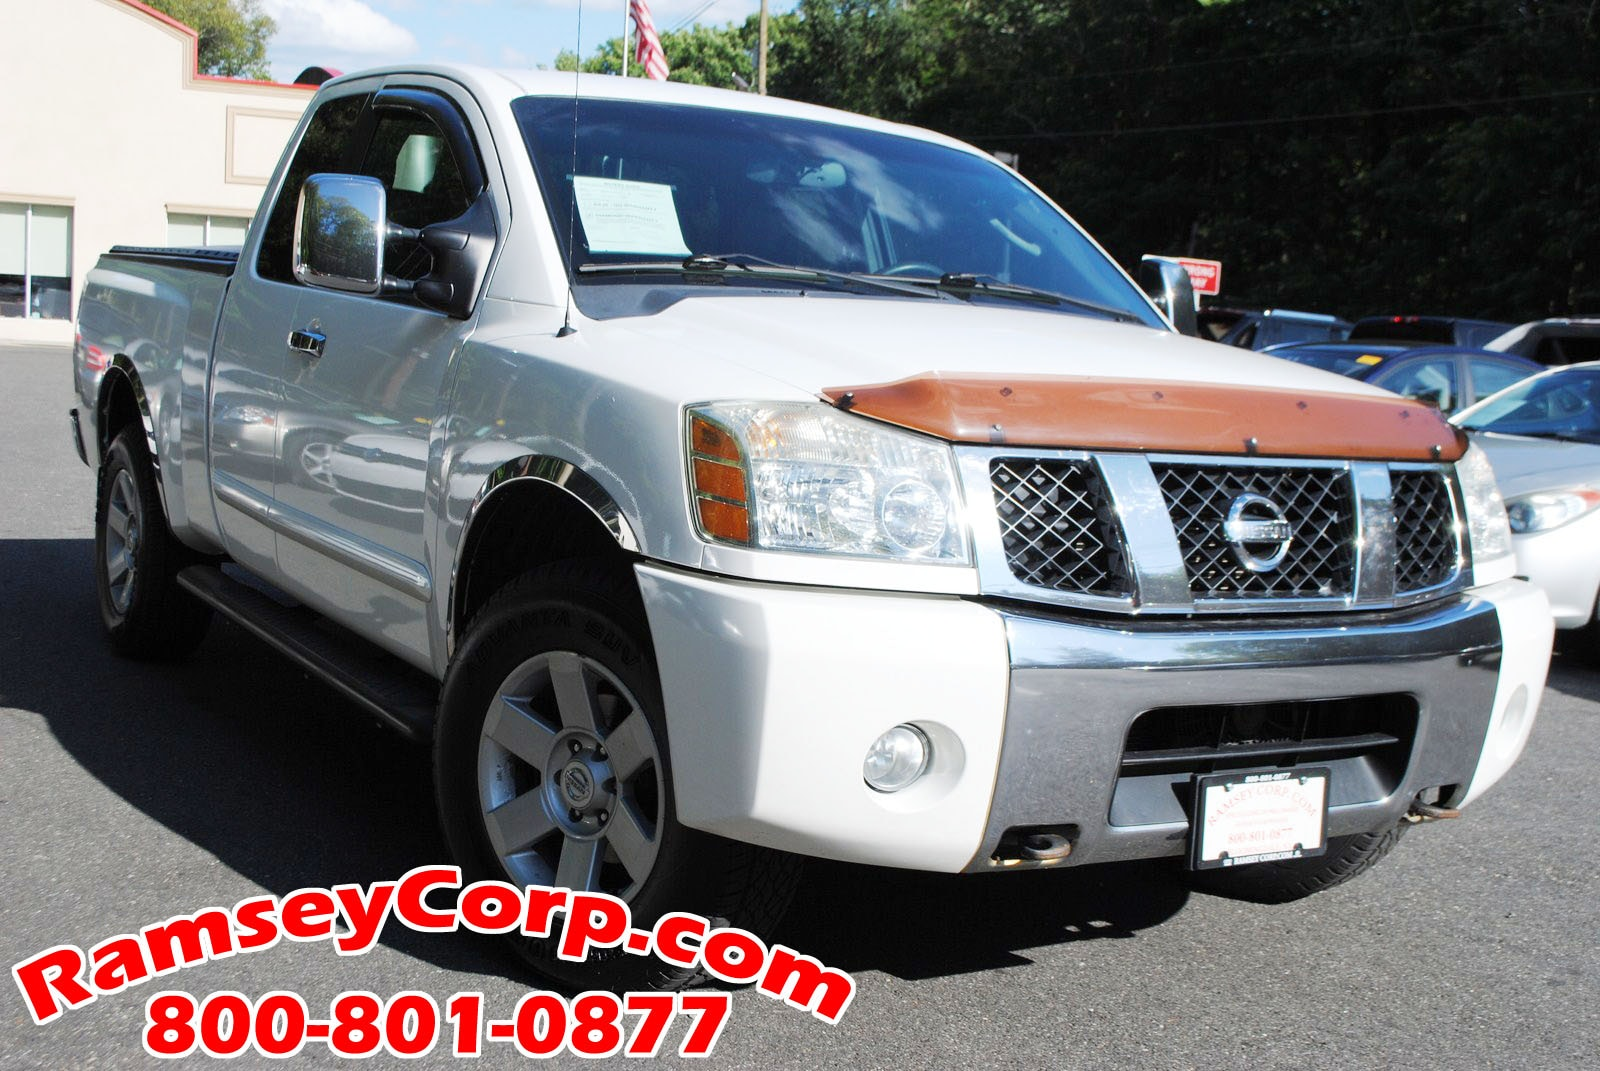 Used 2004 nissan titan for sale west milford nj 2004 nissan titan se 56 truck king cab vanachro Choice Image